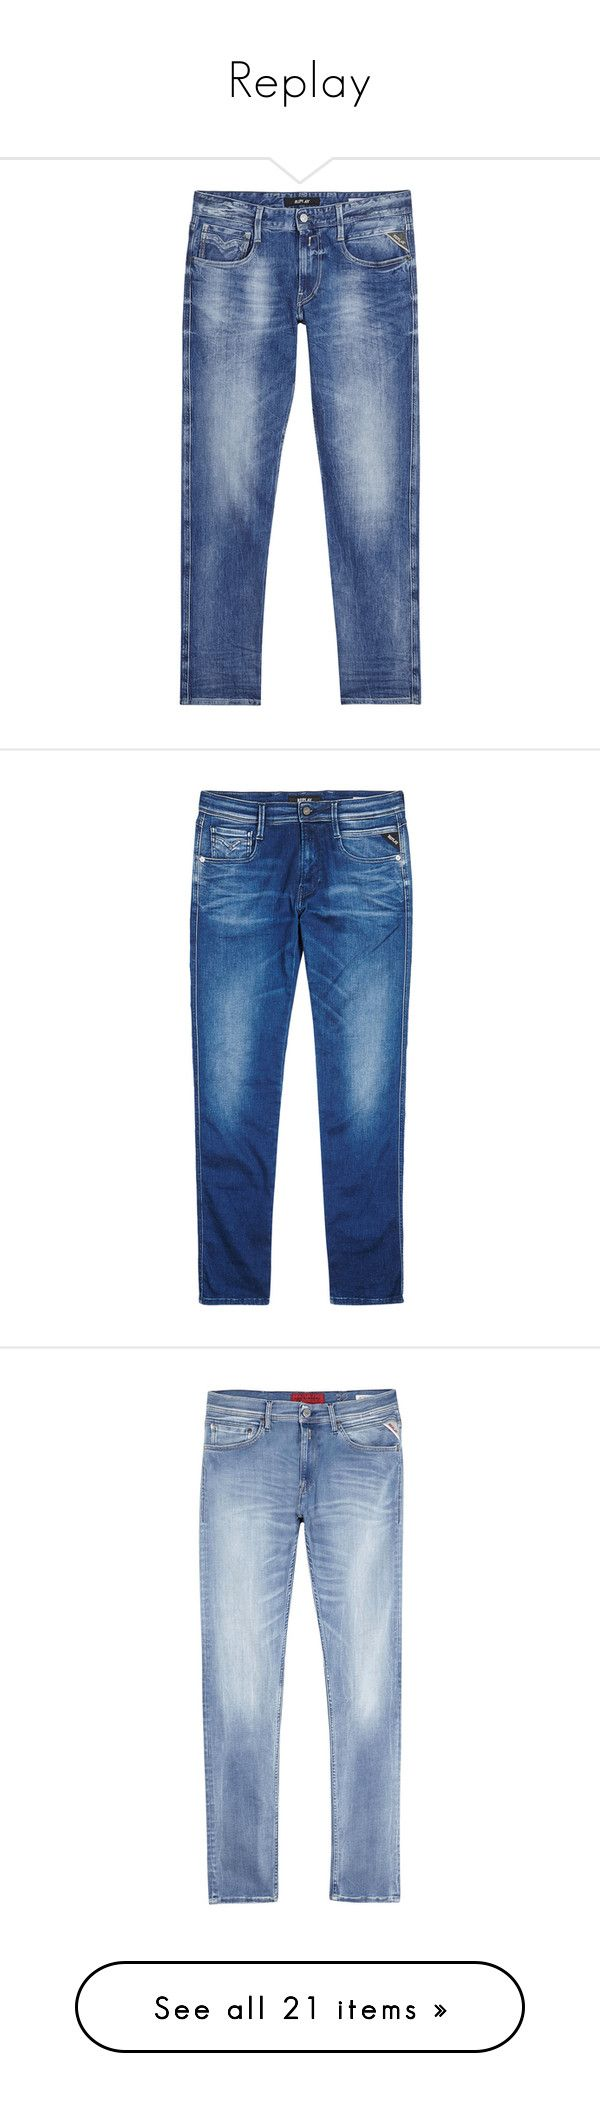 """Replay"" by tina-teena ❤ liked on Polyvore featuring men's fashion, men's clothing, men's jeans, mens faded jeans, replay mens jeans, mens blue jeans, mens super skinny jeans, mens skinny jeans, mens blue skinny jeans and outerwear"